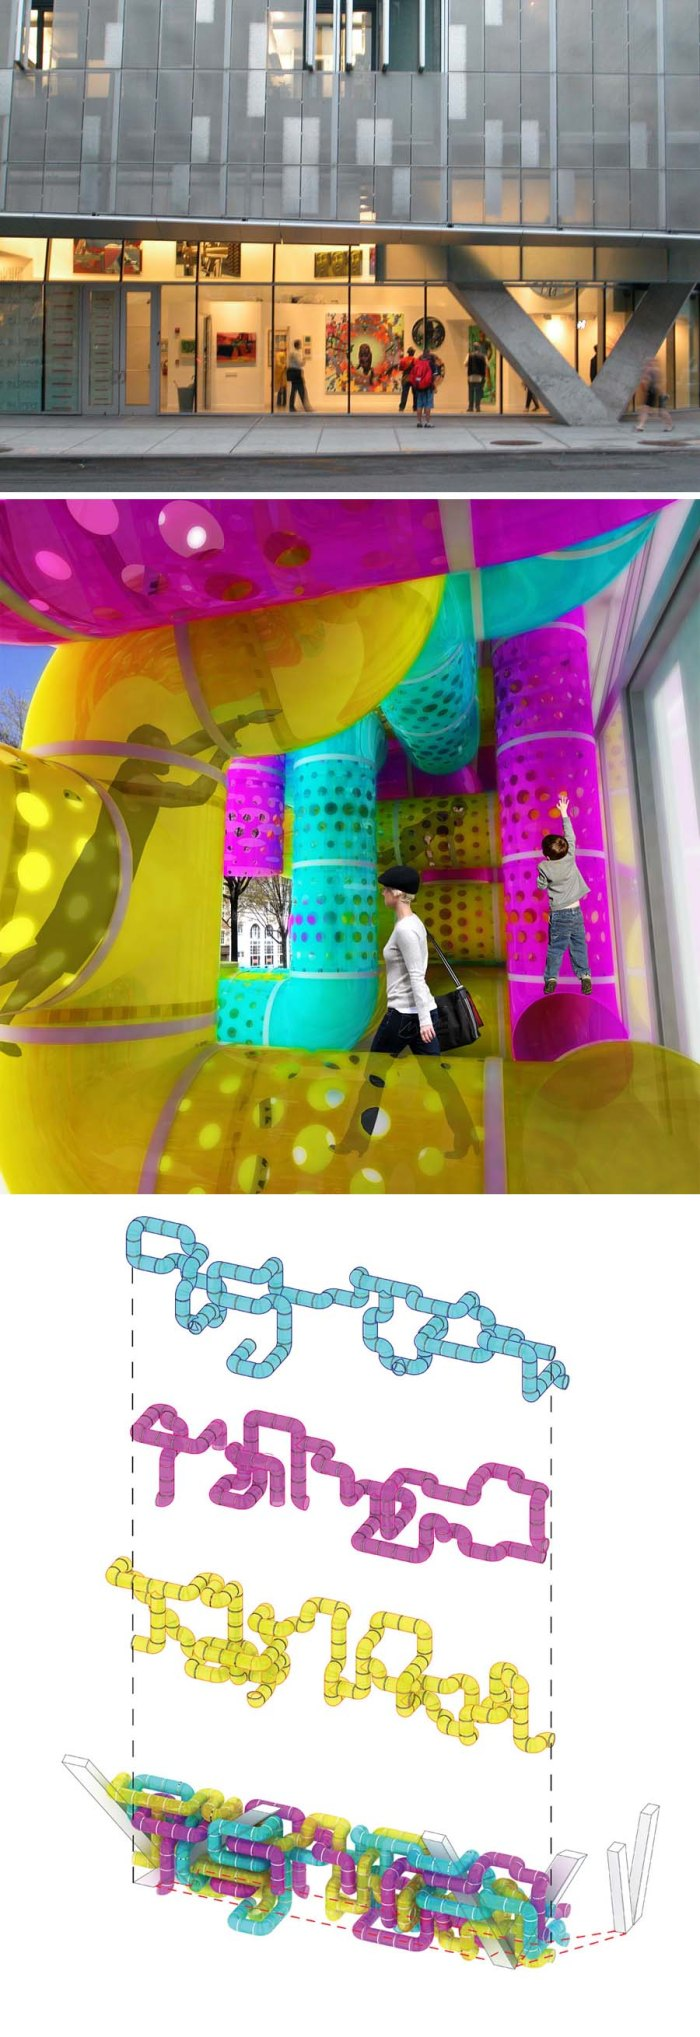 interactive facade competition entry for 41 Cooper Square by Adam Hostetler and Virgina Melnyk. CMYPlay, tubular jungle-gym facade, cool installation